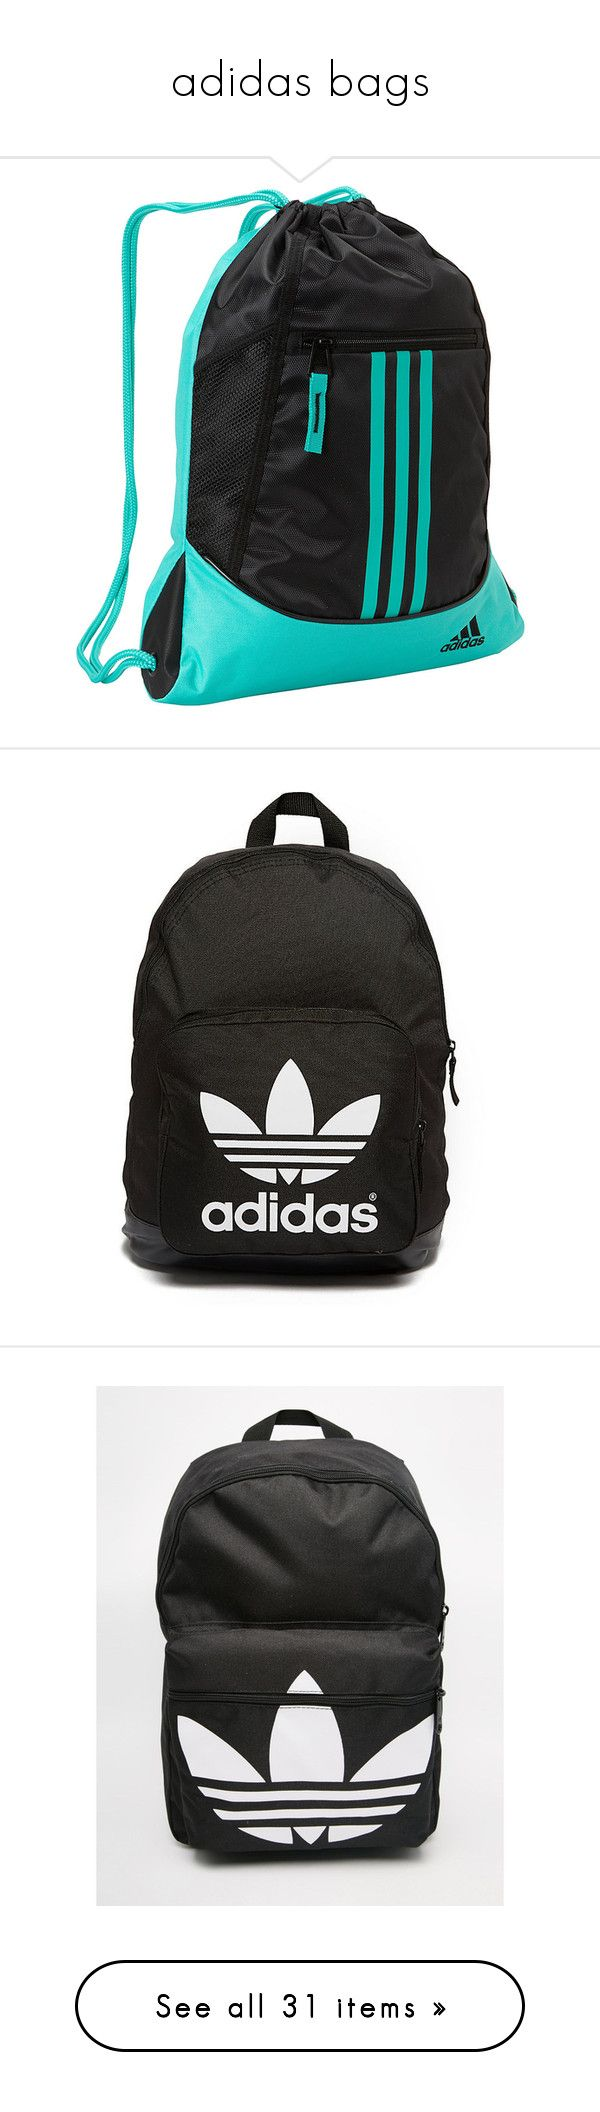 """adidas bags"" by curlprvncess ❤ liked on Polyvore featuring bags, backpacks, black, stripe backpack, mesh backpack, adidas backpack, pocket backpack, adidas bag, luggage and accessories"